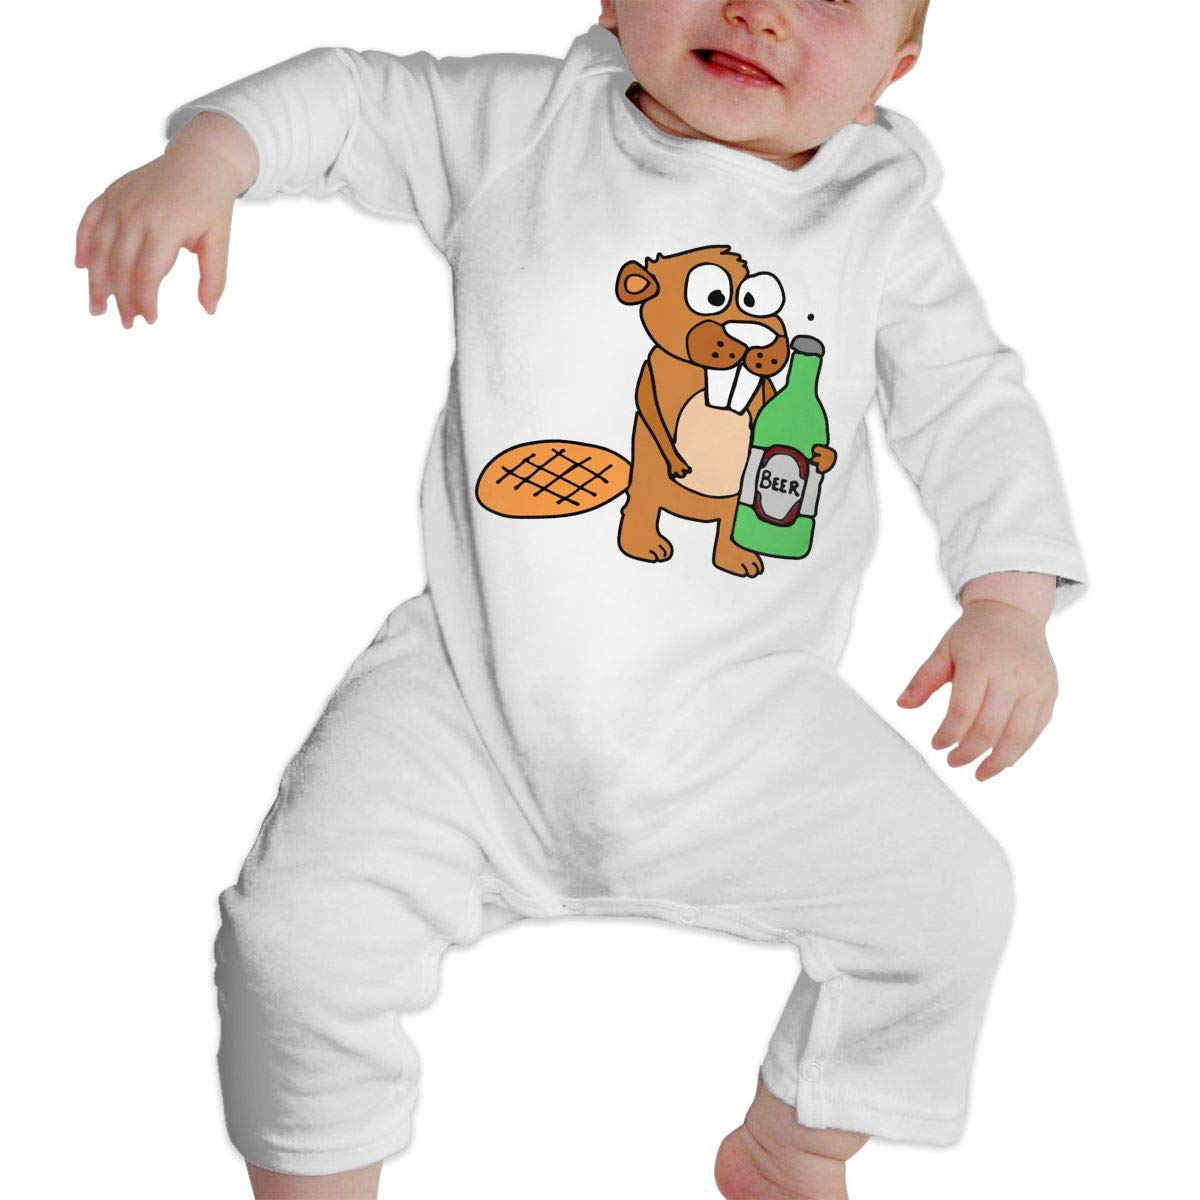 A1BY-5US Infant Baby Boys Girls Cotton Long Sleeve Funny Beaver Drinking Beer Cartoon Romper Bodysuit Romper Clothes